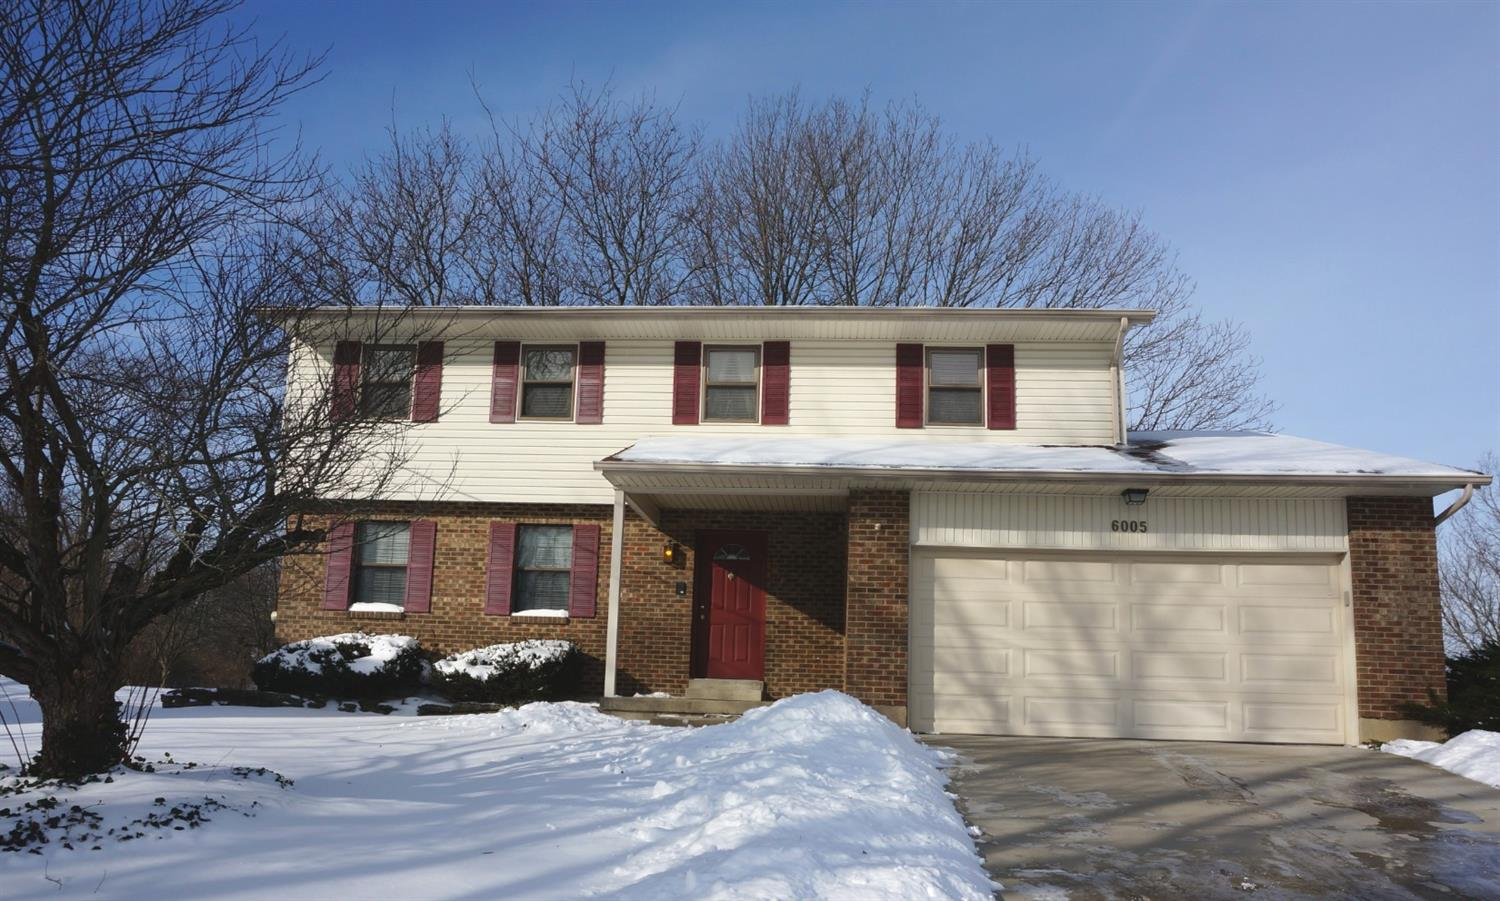 Property for sale at 6005 N Turtlecreek Drive, Fairfield,  OH 45014